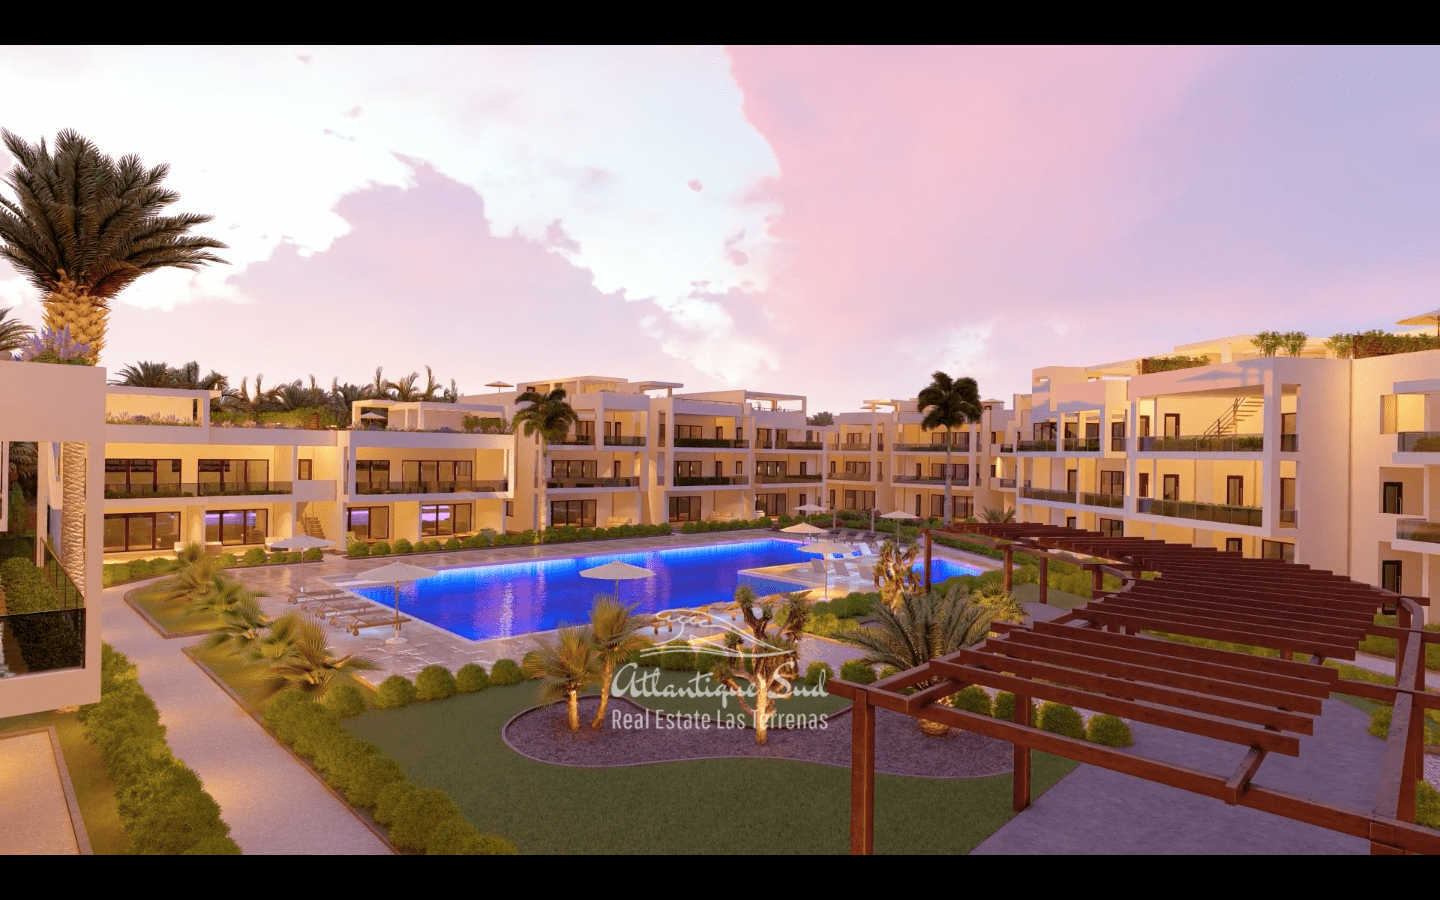 Condos for sale in Las Terrenas Dominican Republic 7.jpg